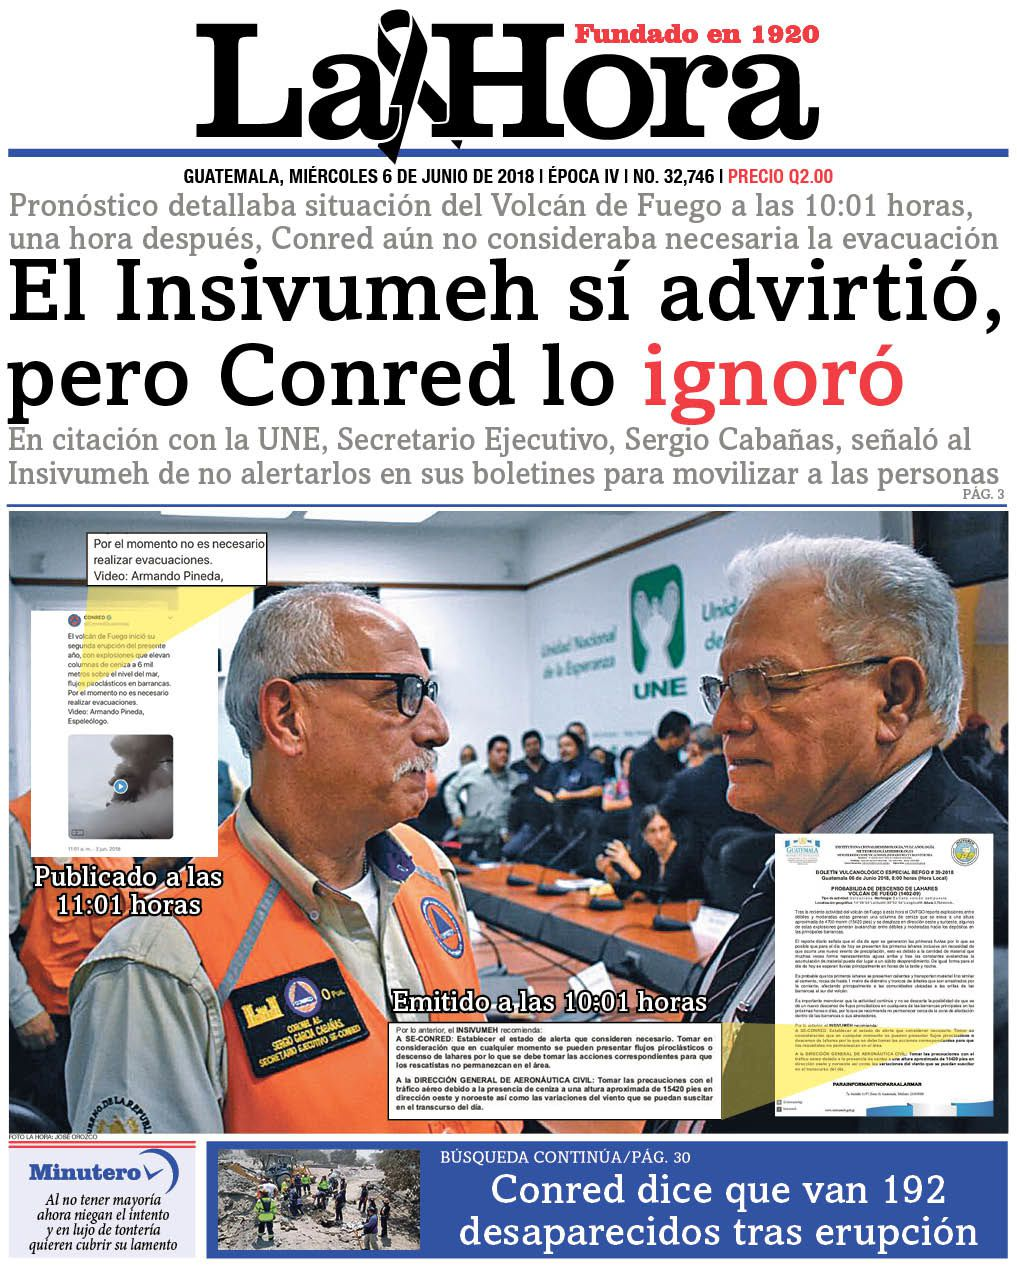 The front page of the newspaper La Hora of 06.06.2018 seems to put back the two supervisory authorities of the Fuego